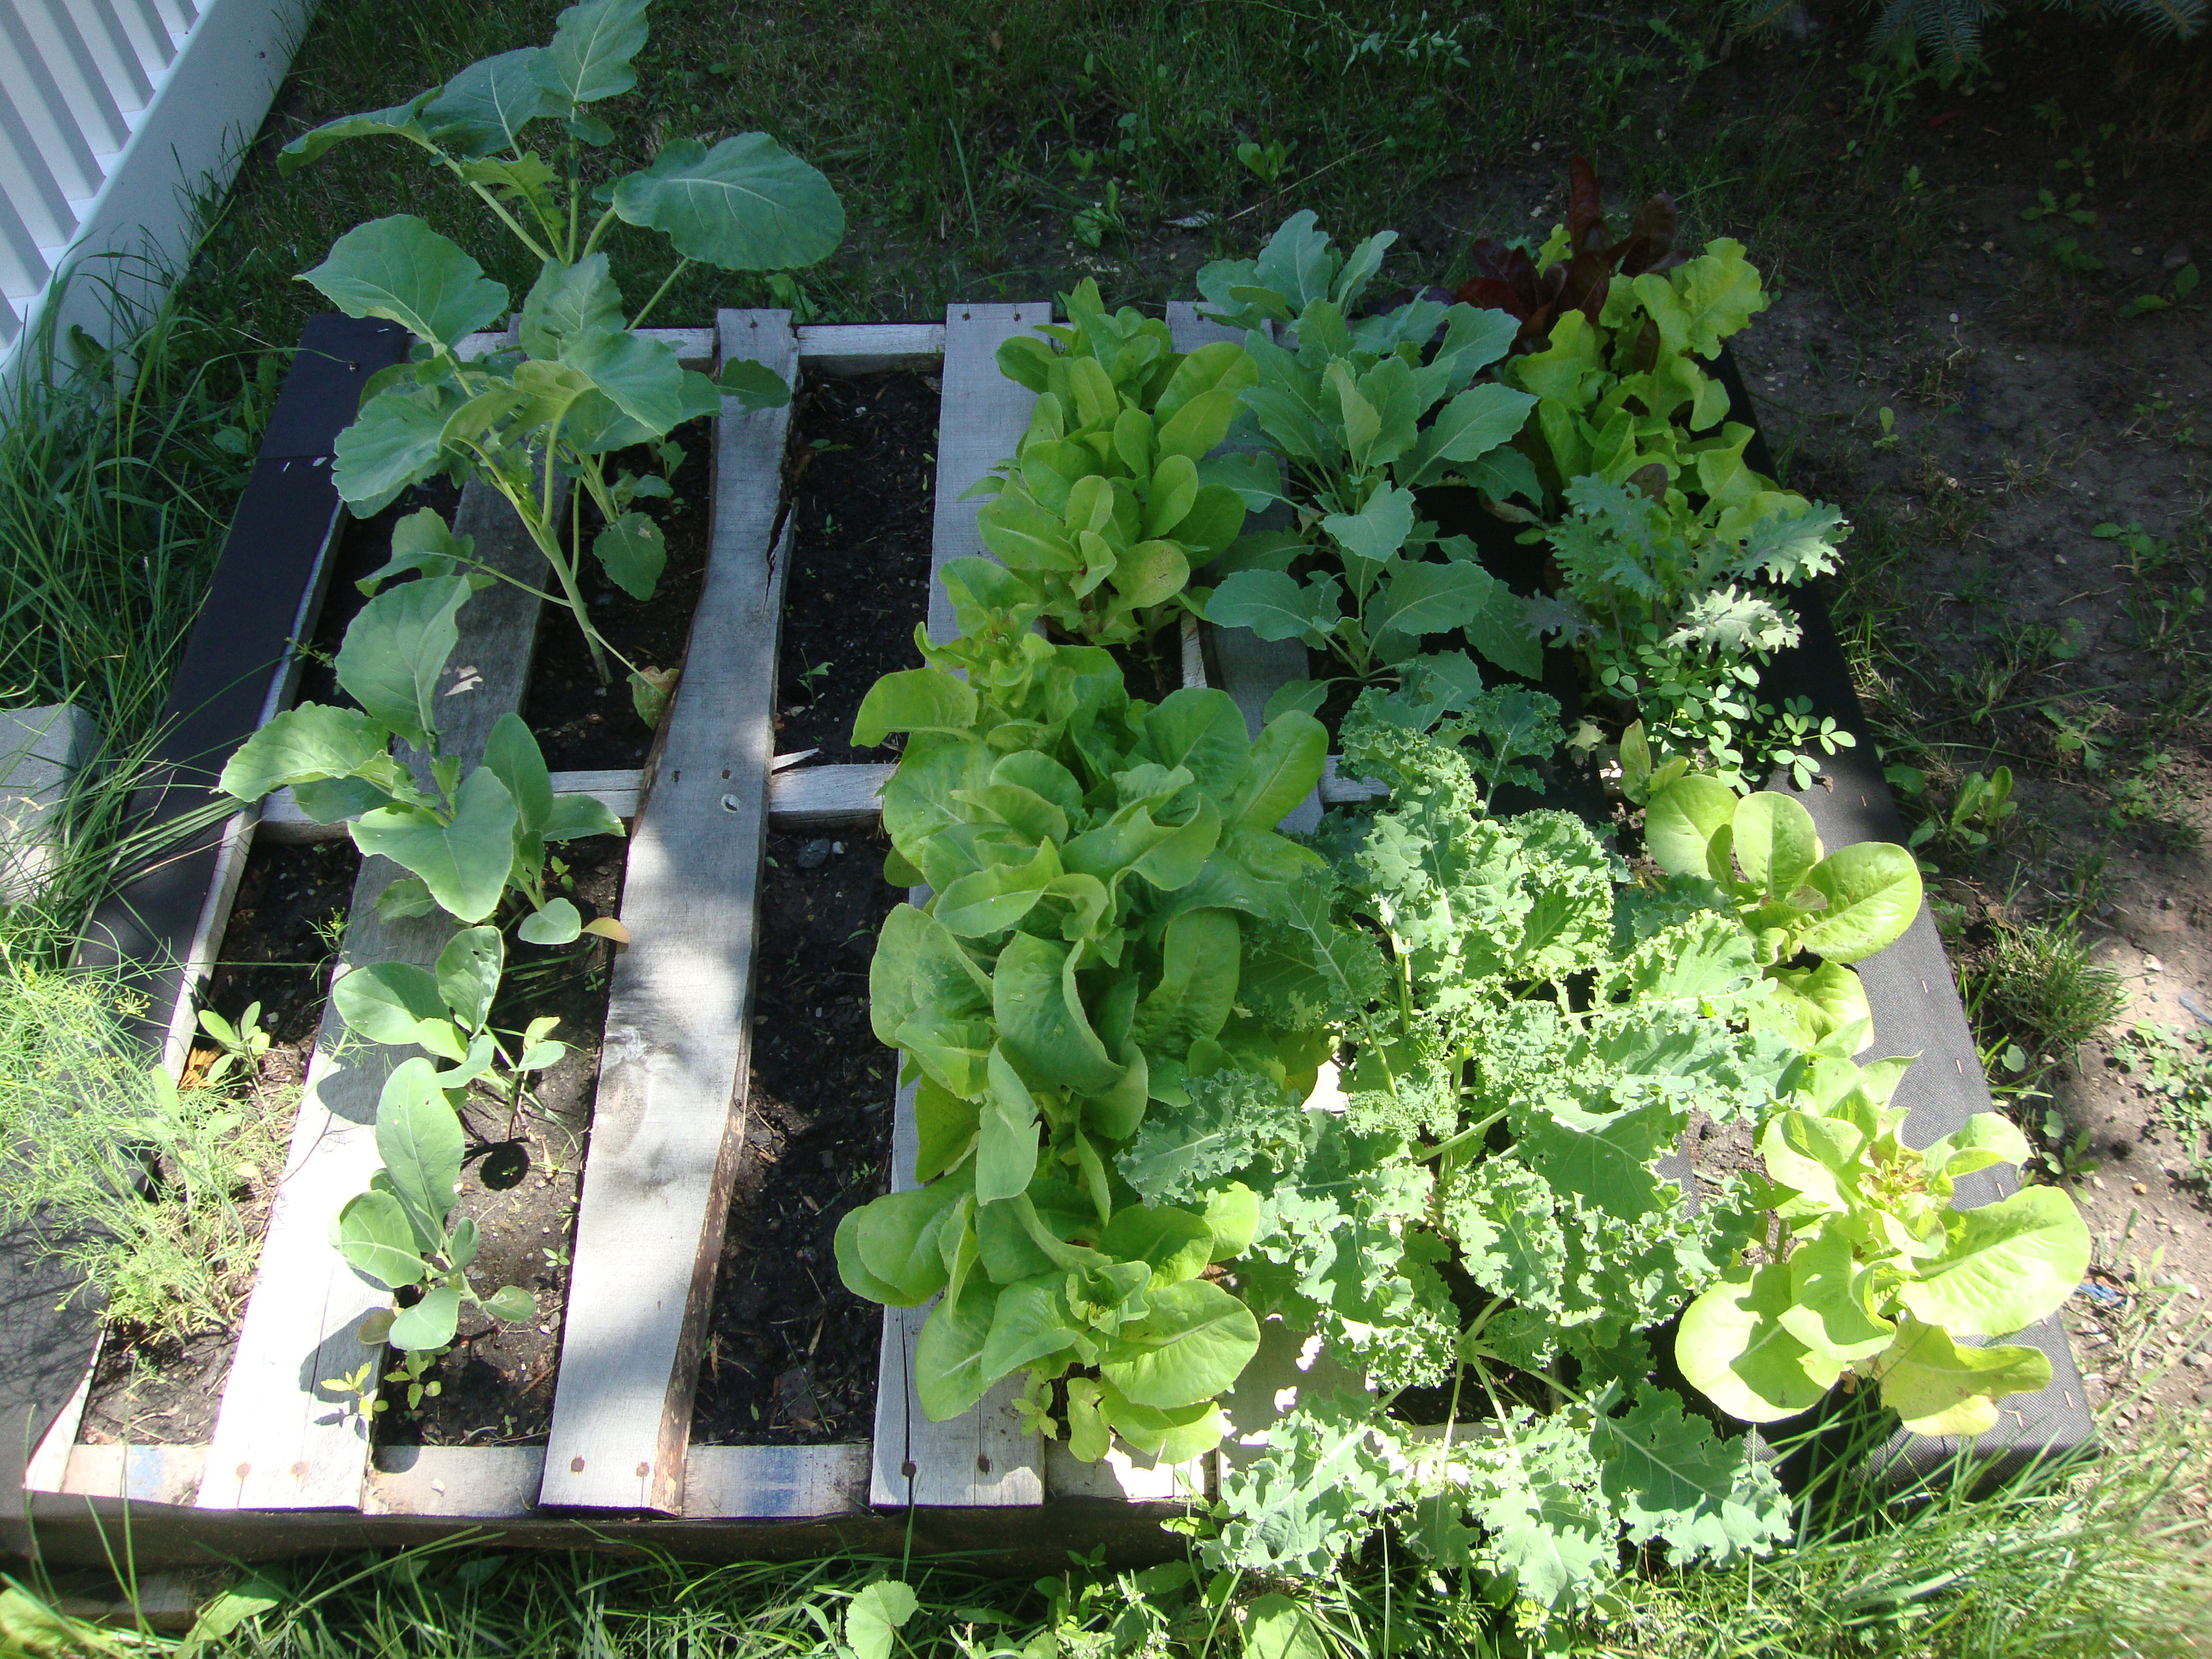 The vegetable garden august 2013 an englishman s garden adventures - Kale Kohlrabi Mixed Greens Spinach Dll And Bibb Lettuce Growing Well